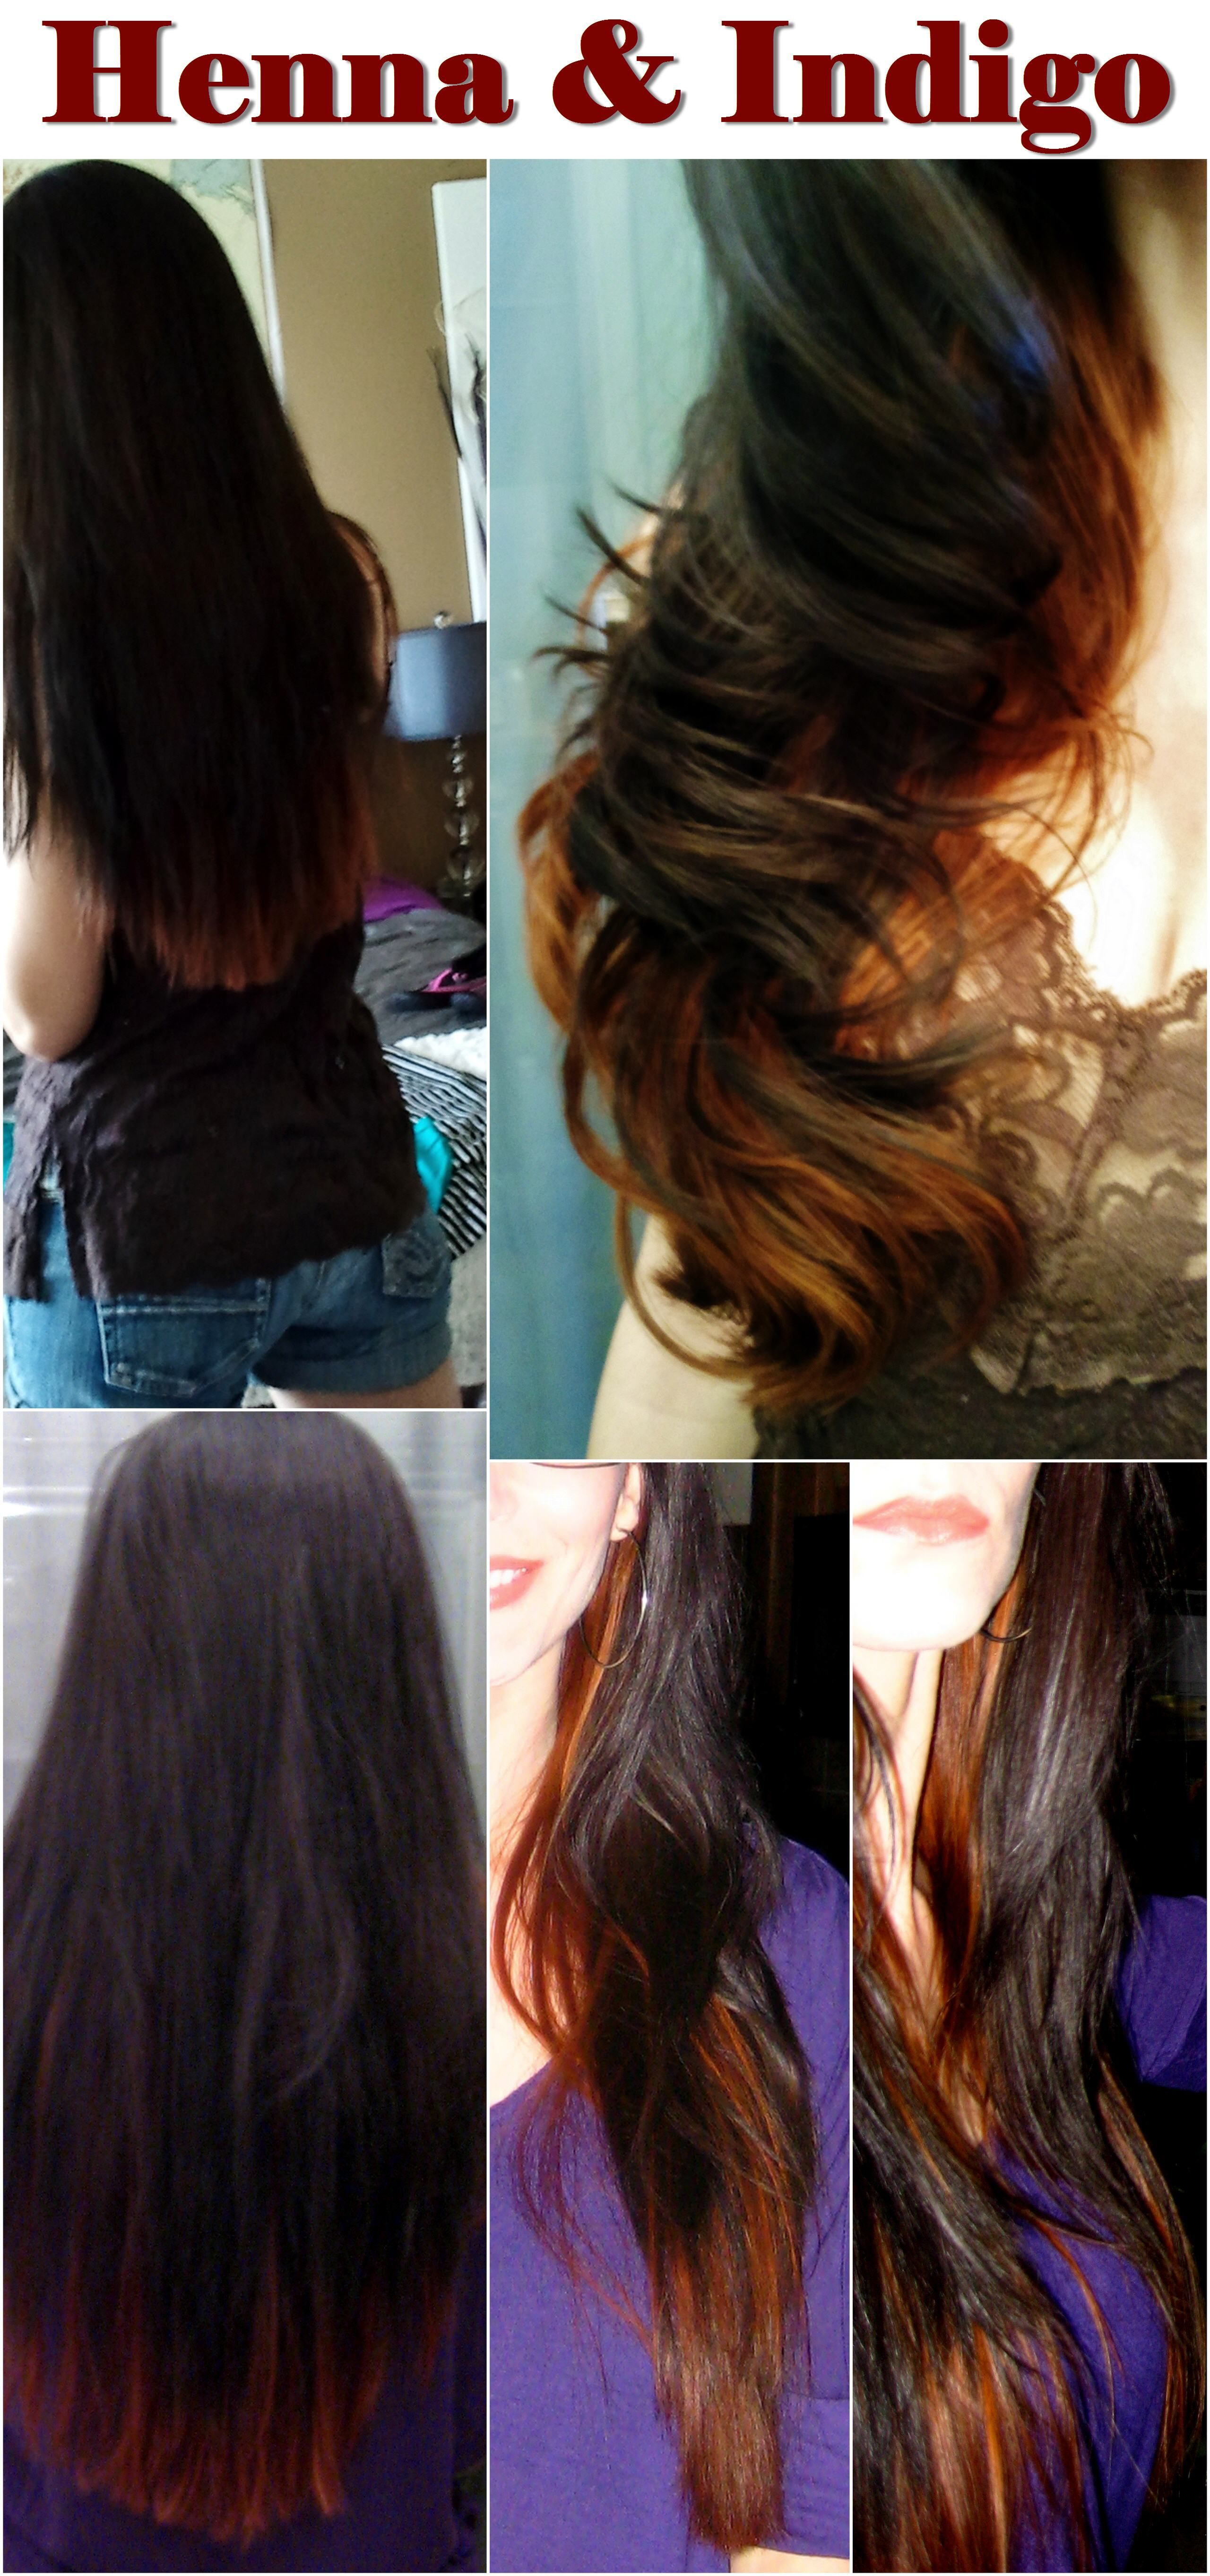 My Black And Copper Hair Pure Henna And Indigo Powder I St Dyed All Of My Hair With Henna Then I Used Indigo Powder On Just The Top Layers Of Hair